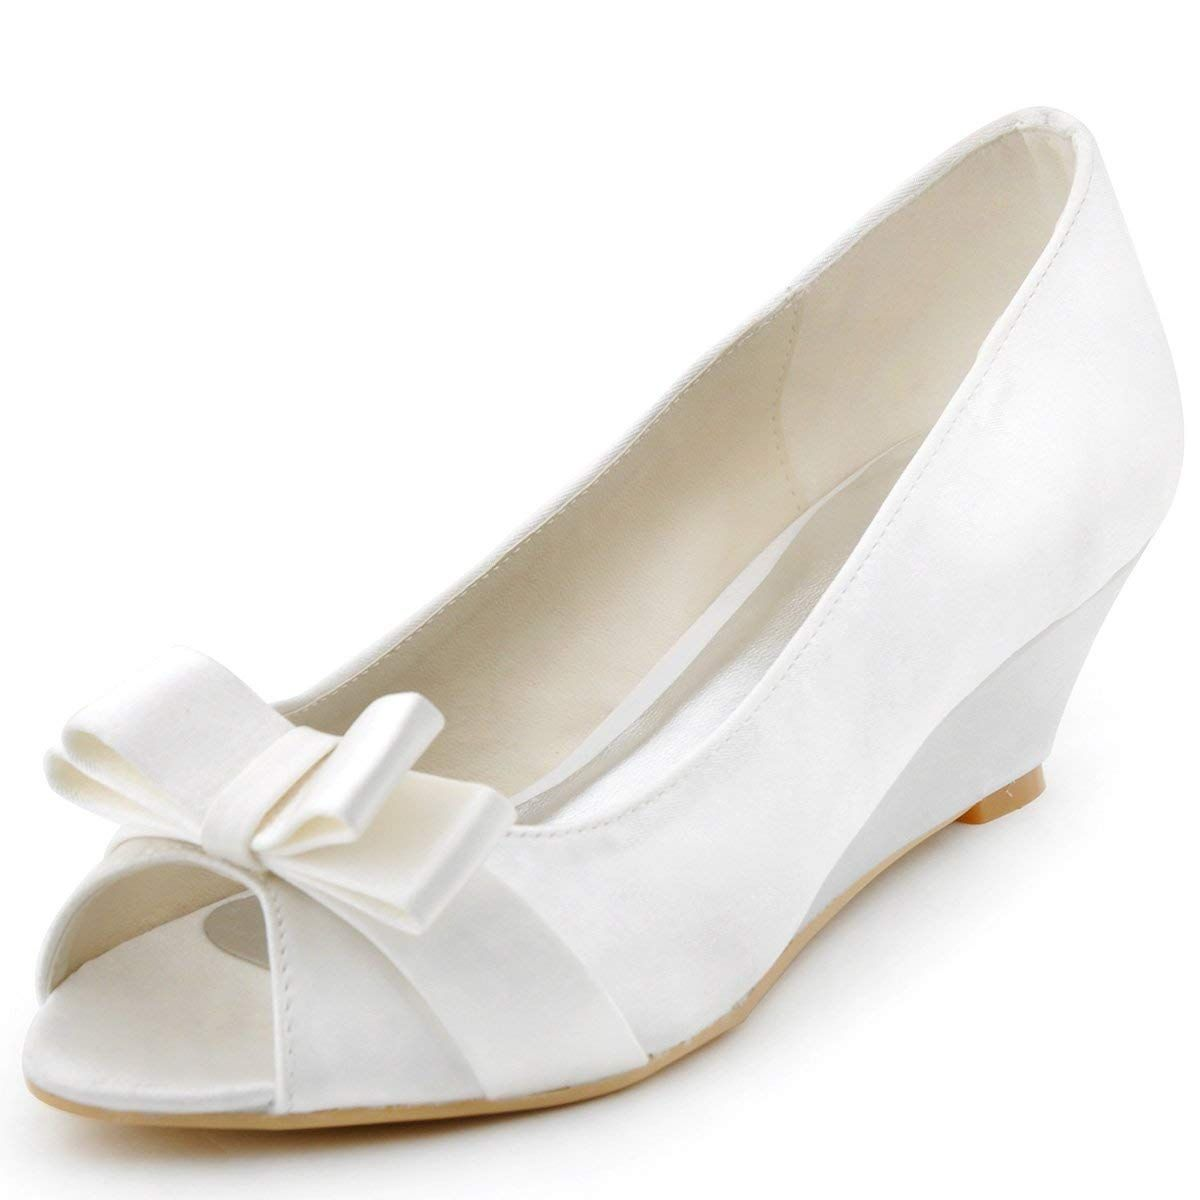 fe4cdd9c3242 ElegantPark Women Peep Toe Pumps Bows Mid Heel Wedges Satin Wedding Bridal  Shoes     Thank you for having seen our image. (This is our affiliate link)    ...